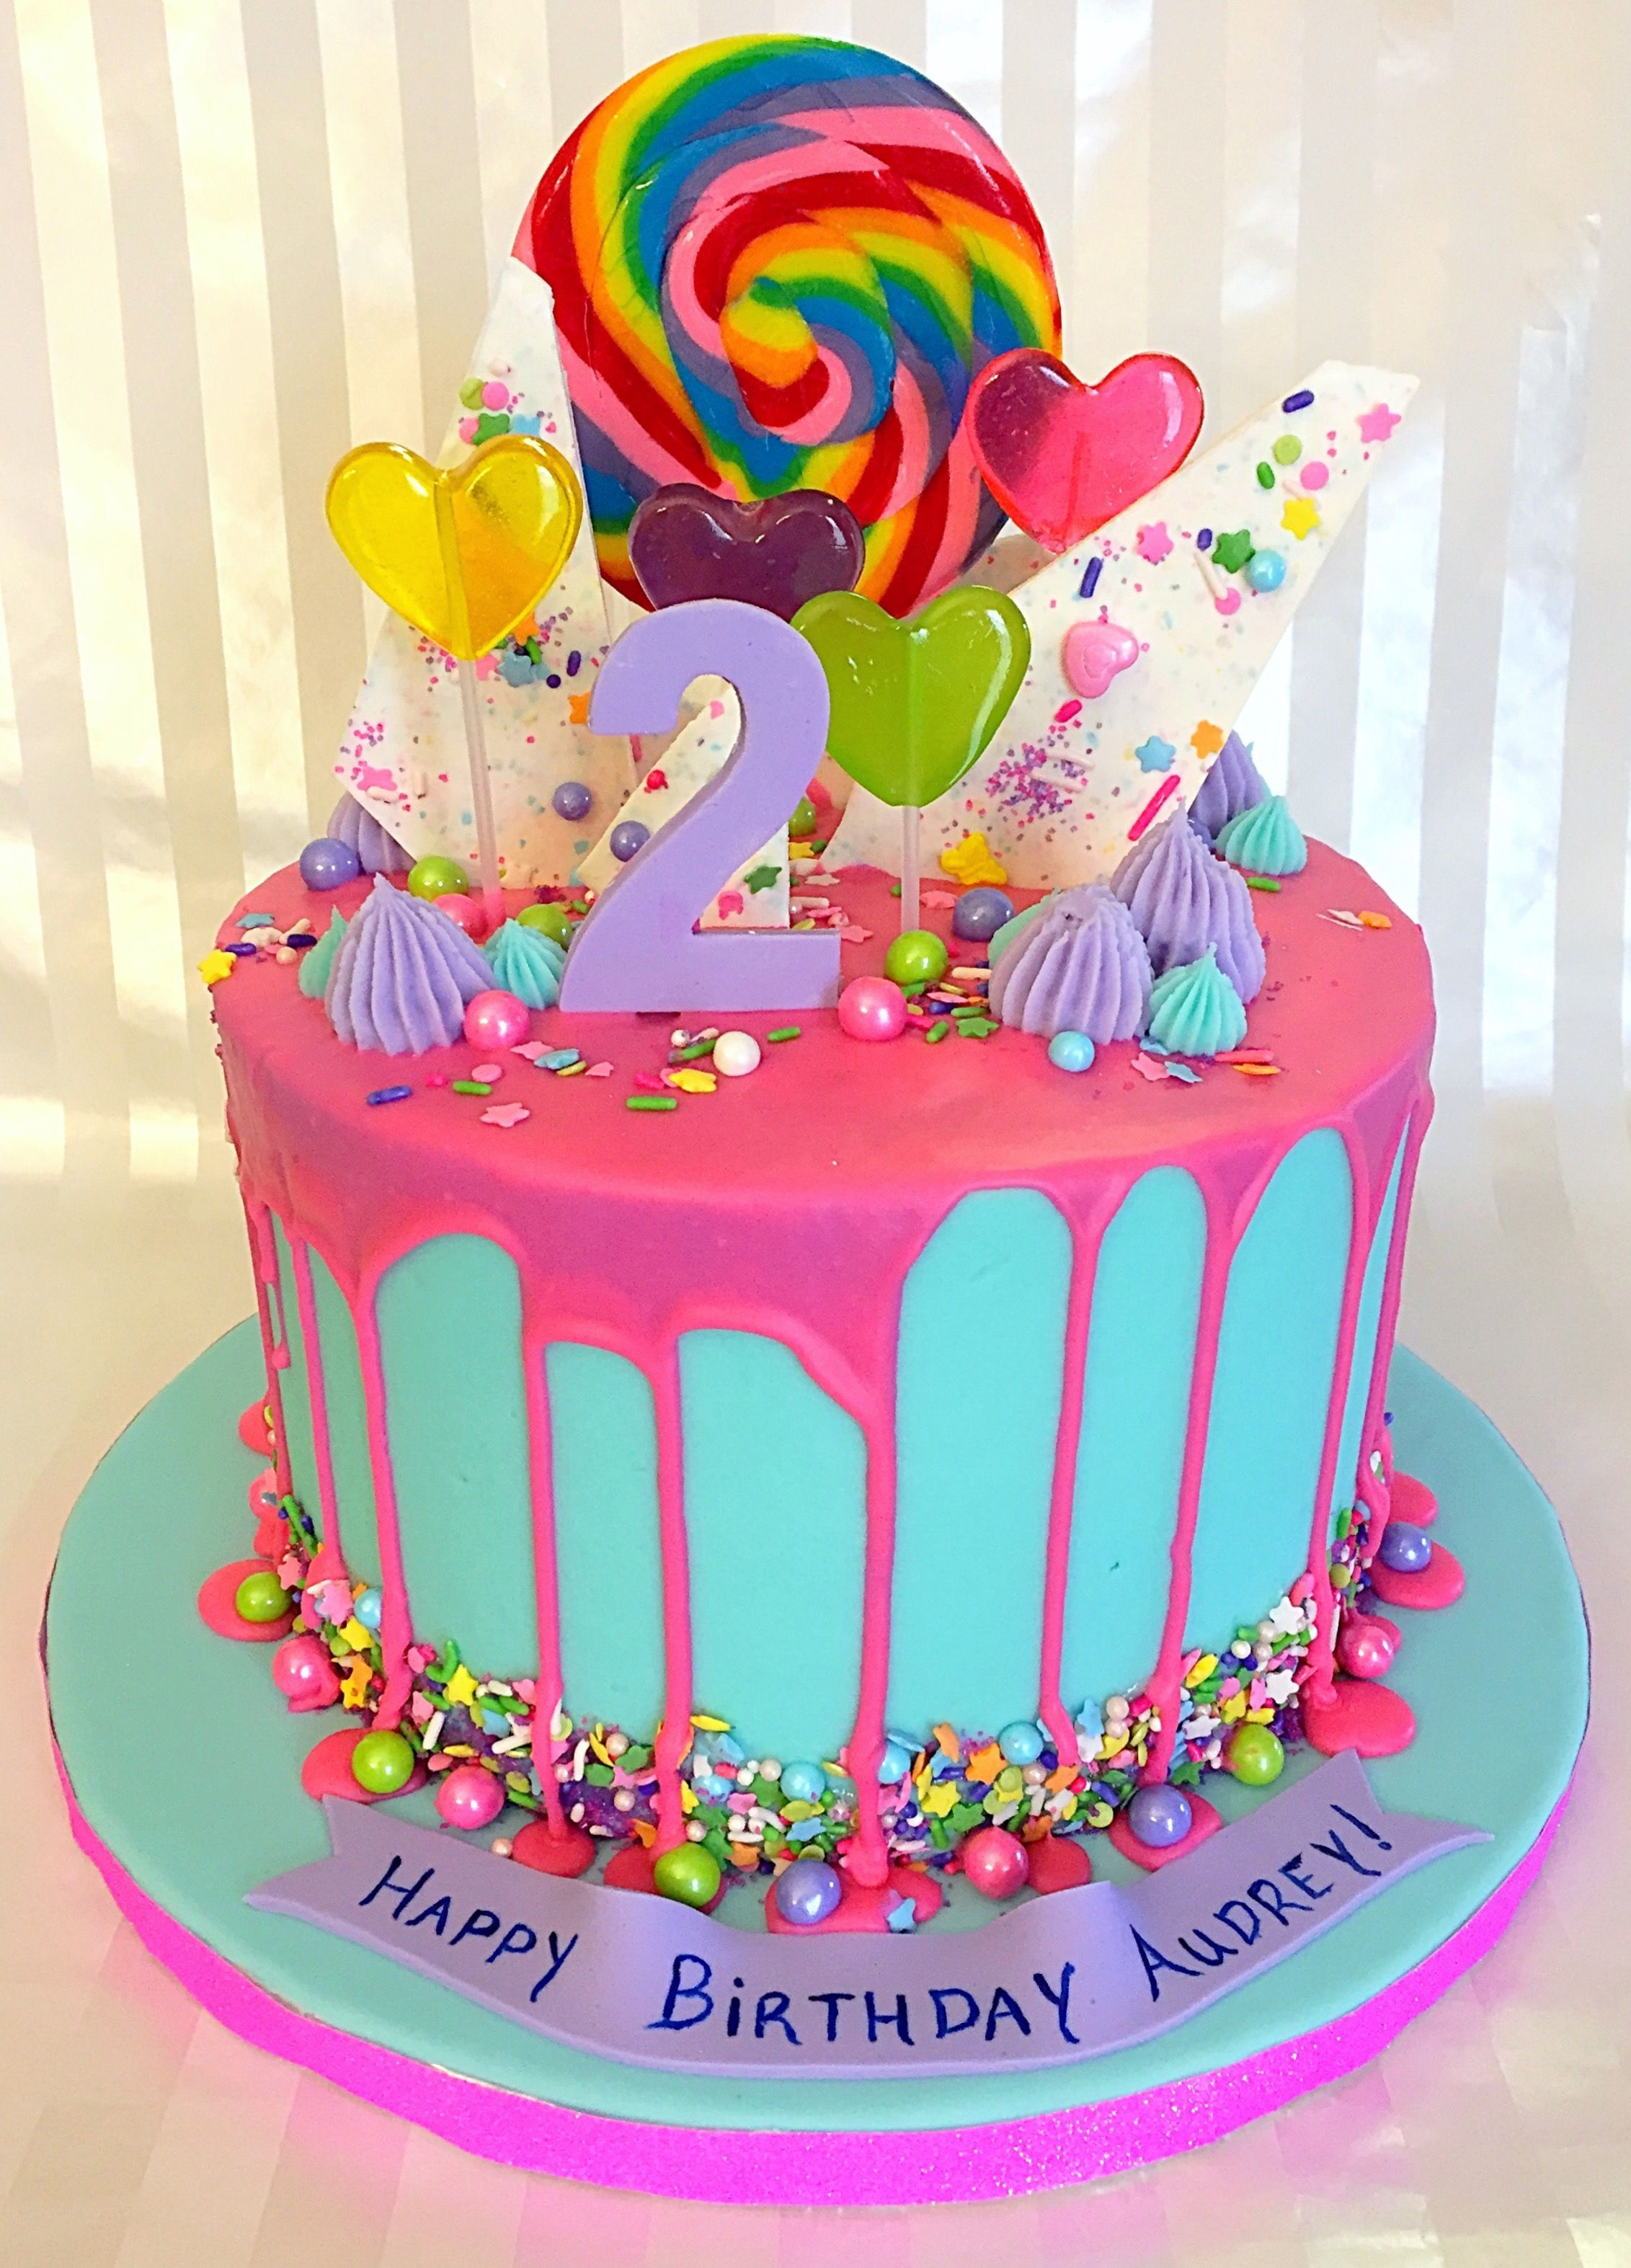 Geburtstag Kuchen Candy Drip Cake Sweet Lia 39s Cakes And Treats